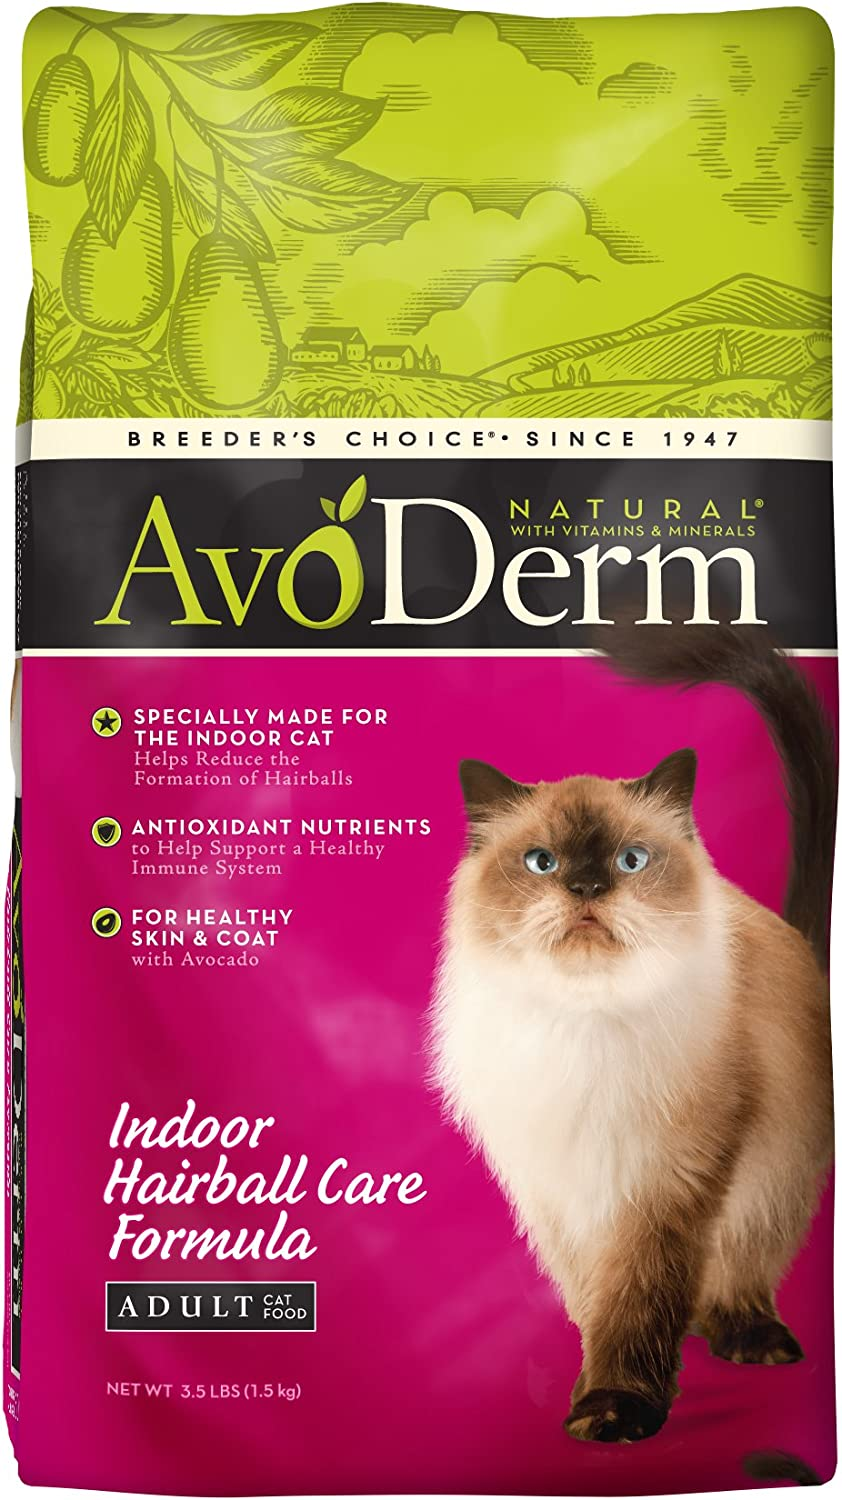 AvoDerm Natural Indoor Hairball Care Formula Adult Cat Food, 3.5-Pound